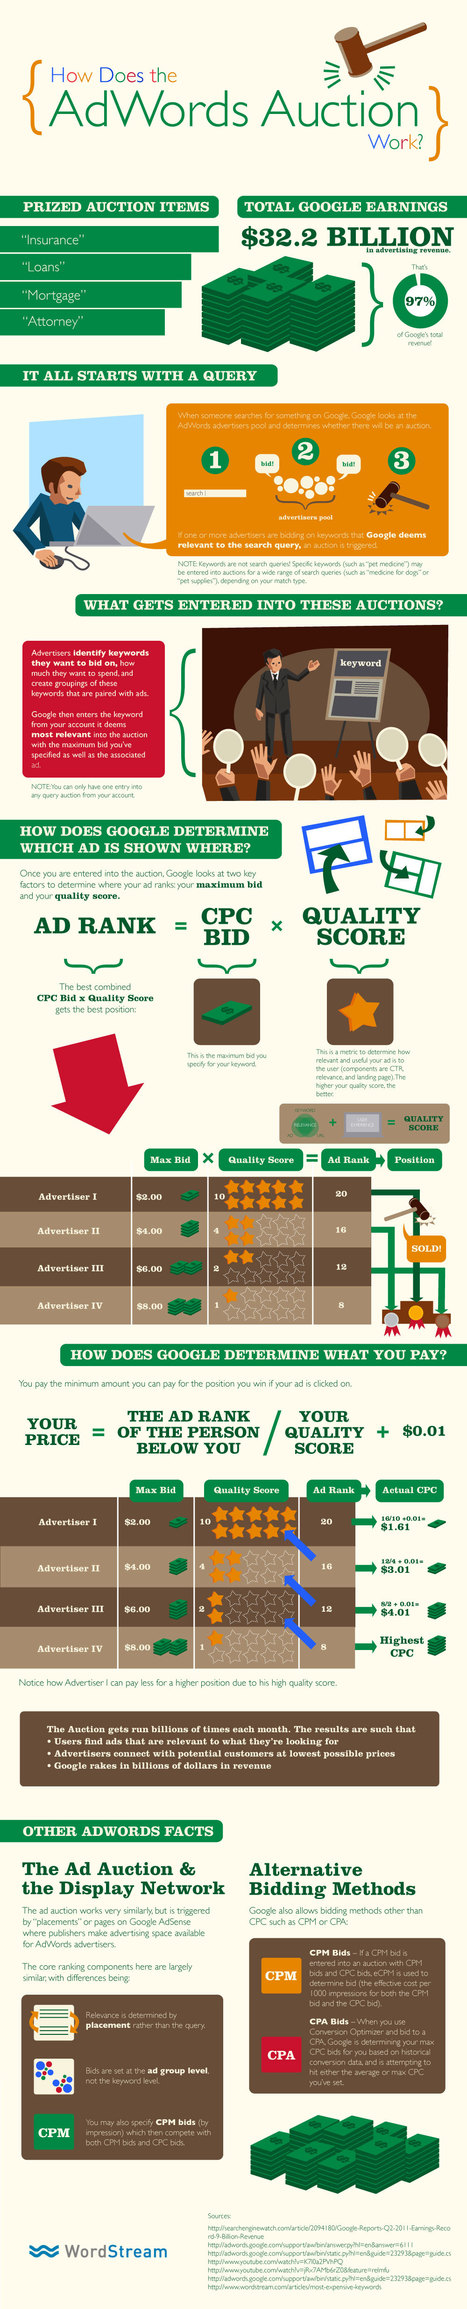 Infographie : Comment fonctionnent les enchères Adwords ? | Curation SEO & SEA | Scoop.it